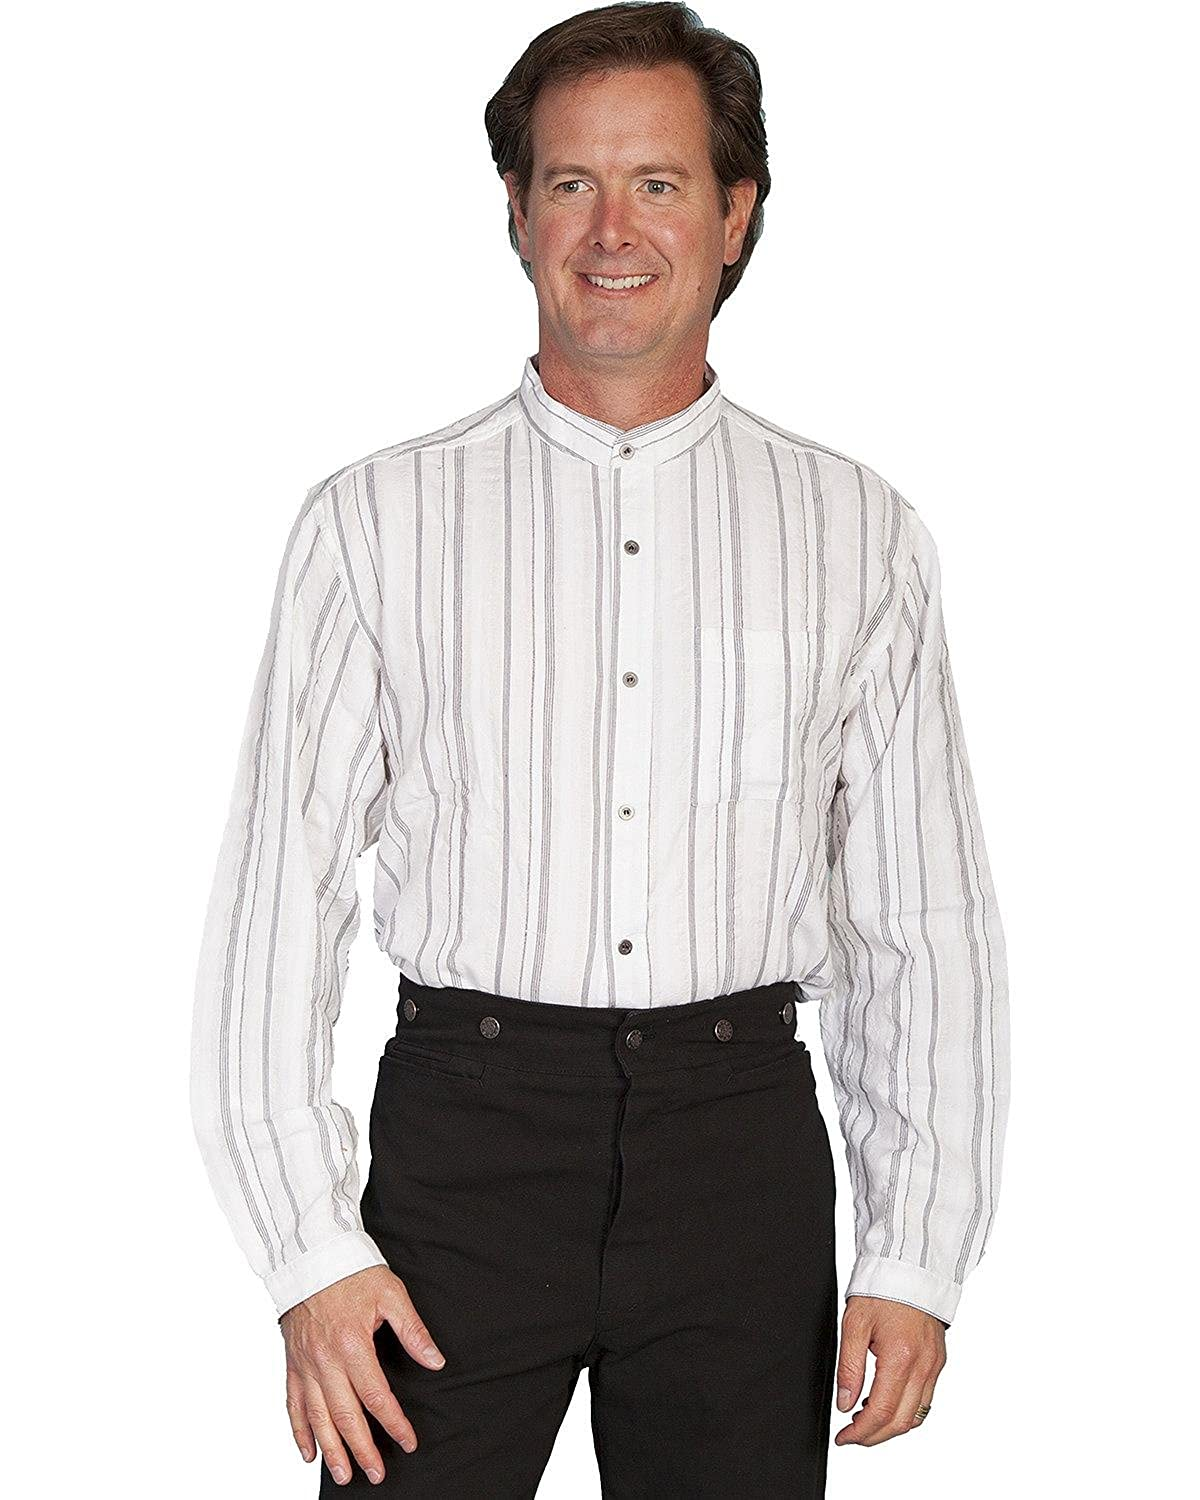 1919 Clothing: Mr. Selfridge Costumes Season 3 Scully One of Our Best Selling Shirts - White $49.99 AT vintagedancer.com